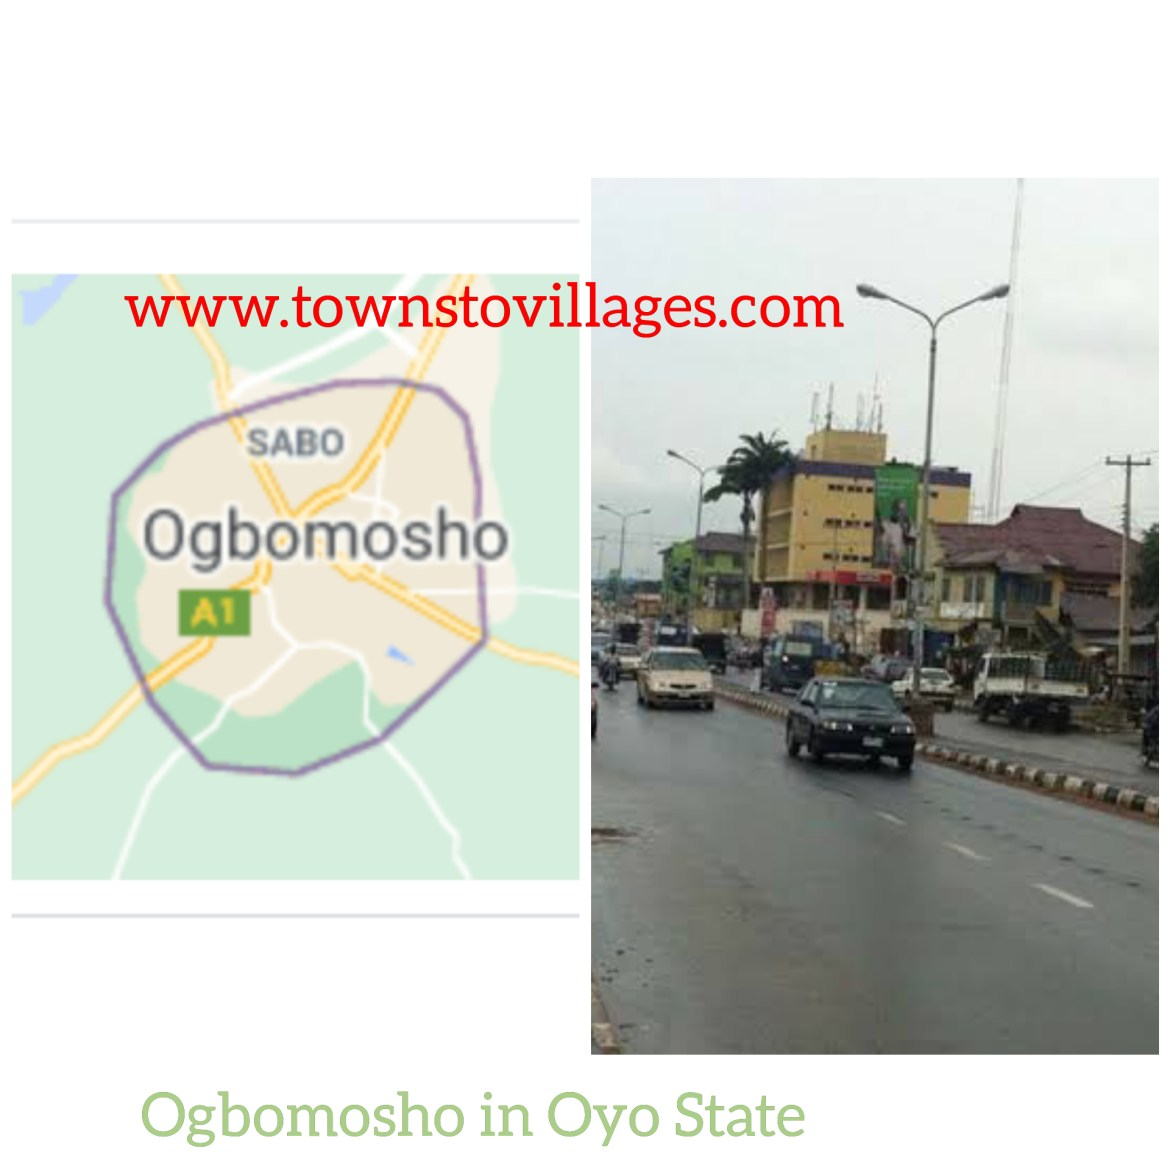 Ogbomosho in Oyo State